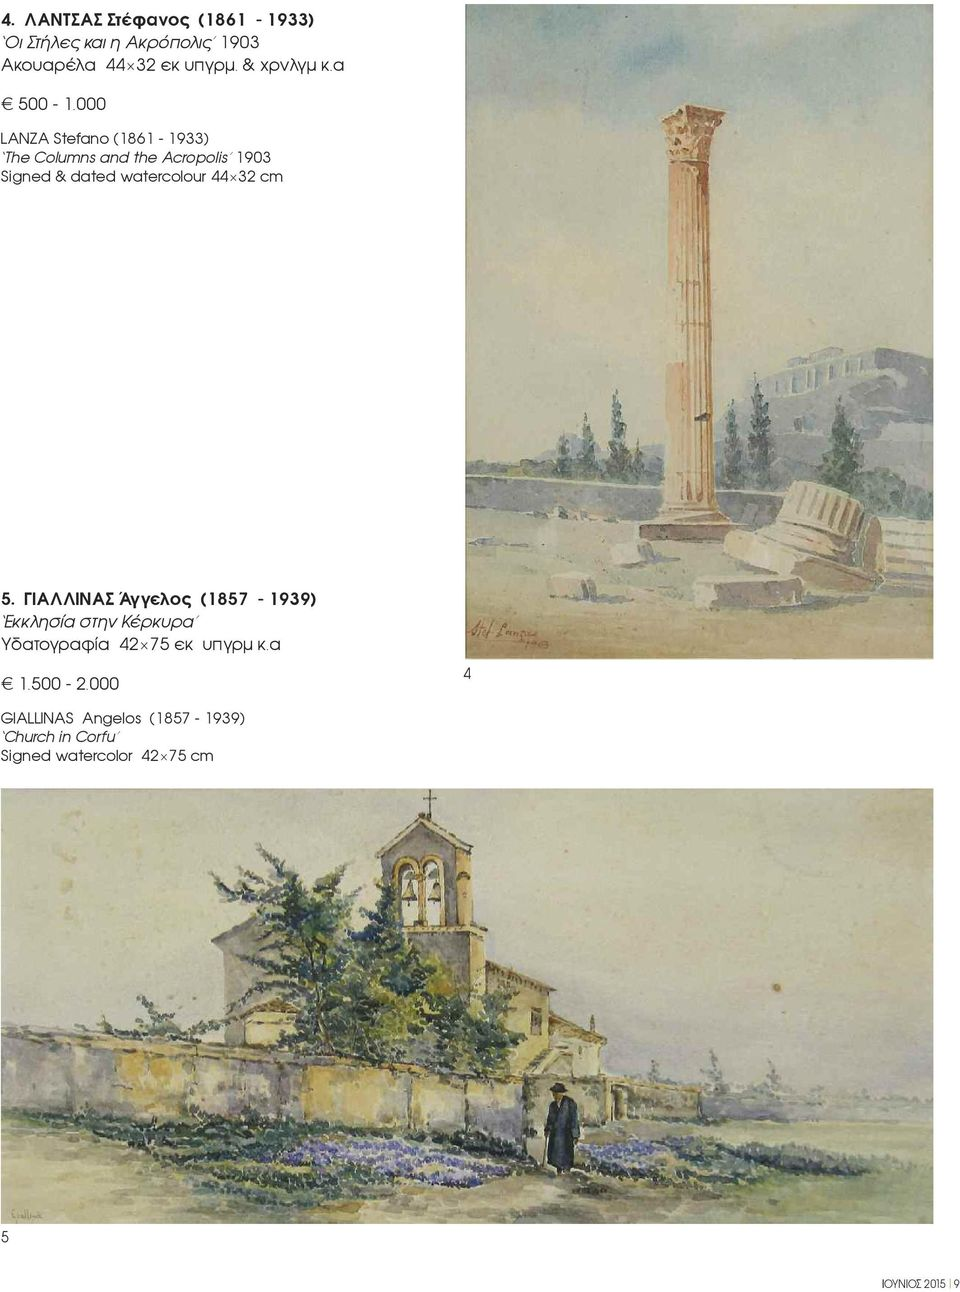 000 LANZA Stefano (1861-1933) The Columns and the Acropolis 1903 Signed & dated watercolour 44 32